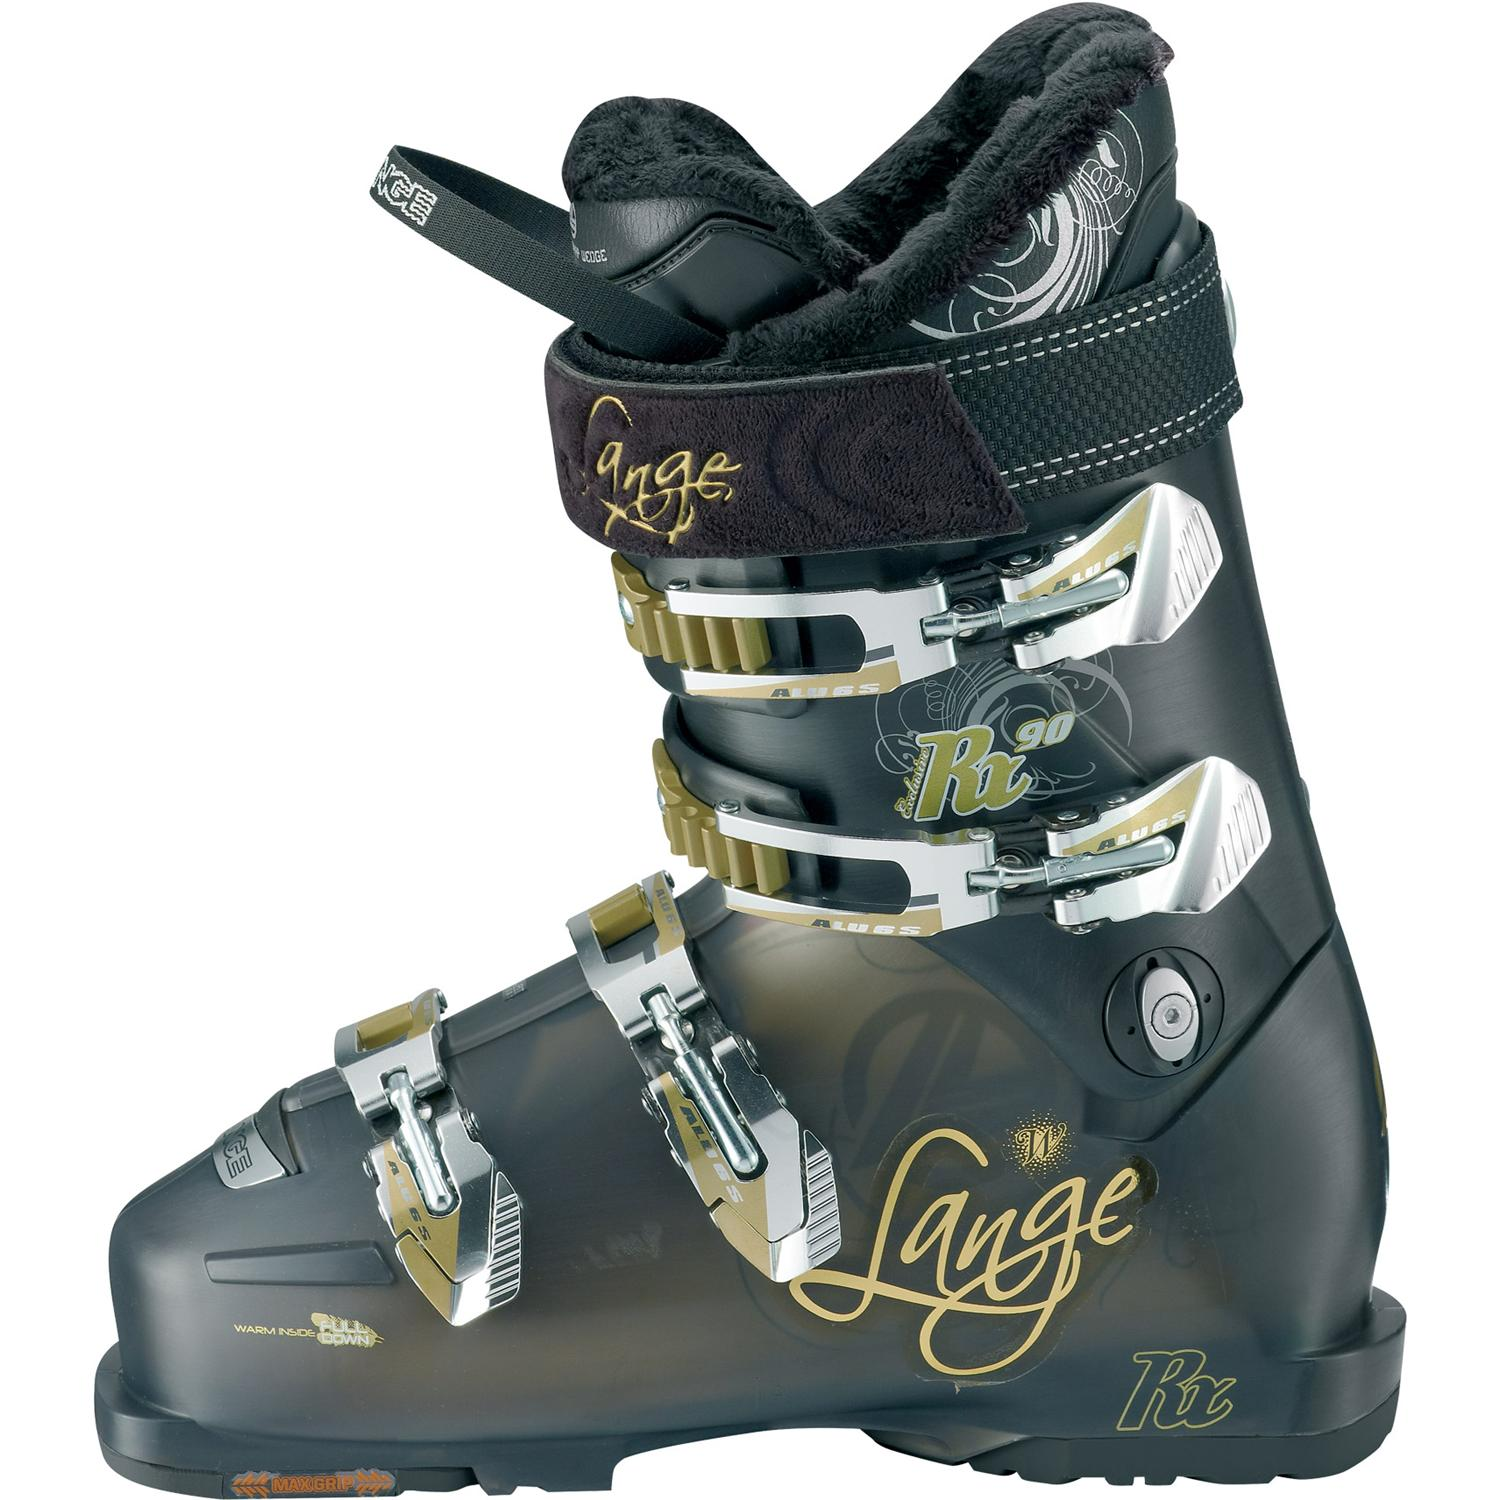 Lange Exclusive RX 90 Ski Boots - Women's 2011 | evo outlet